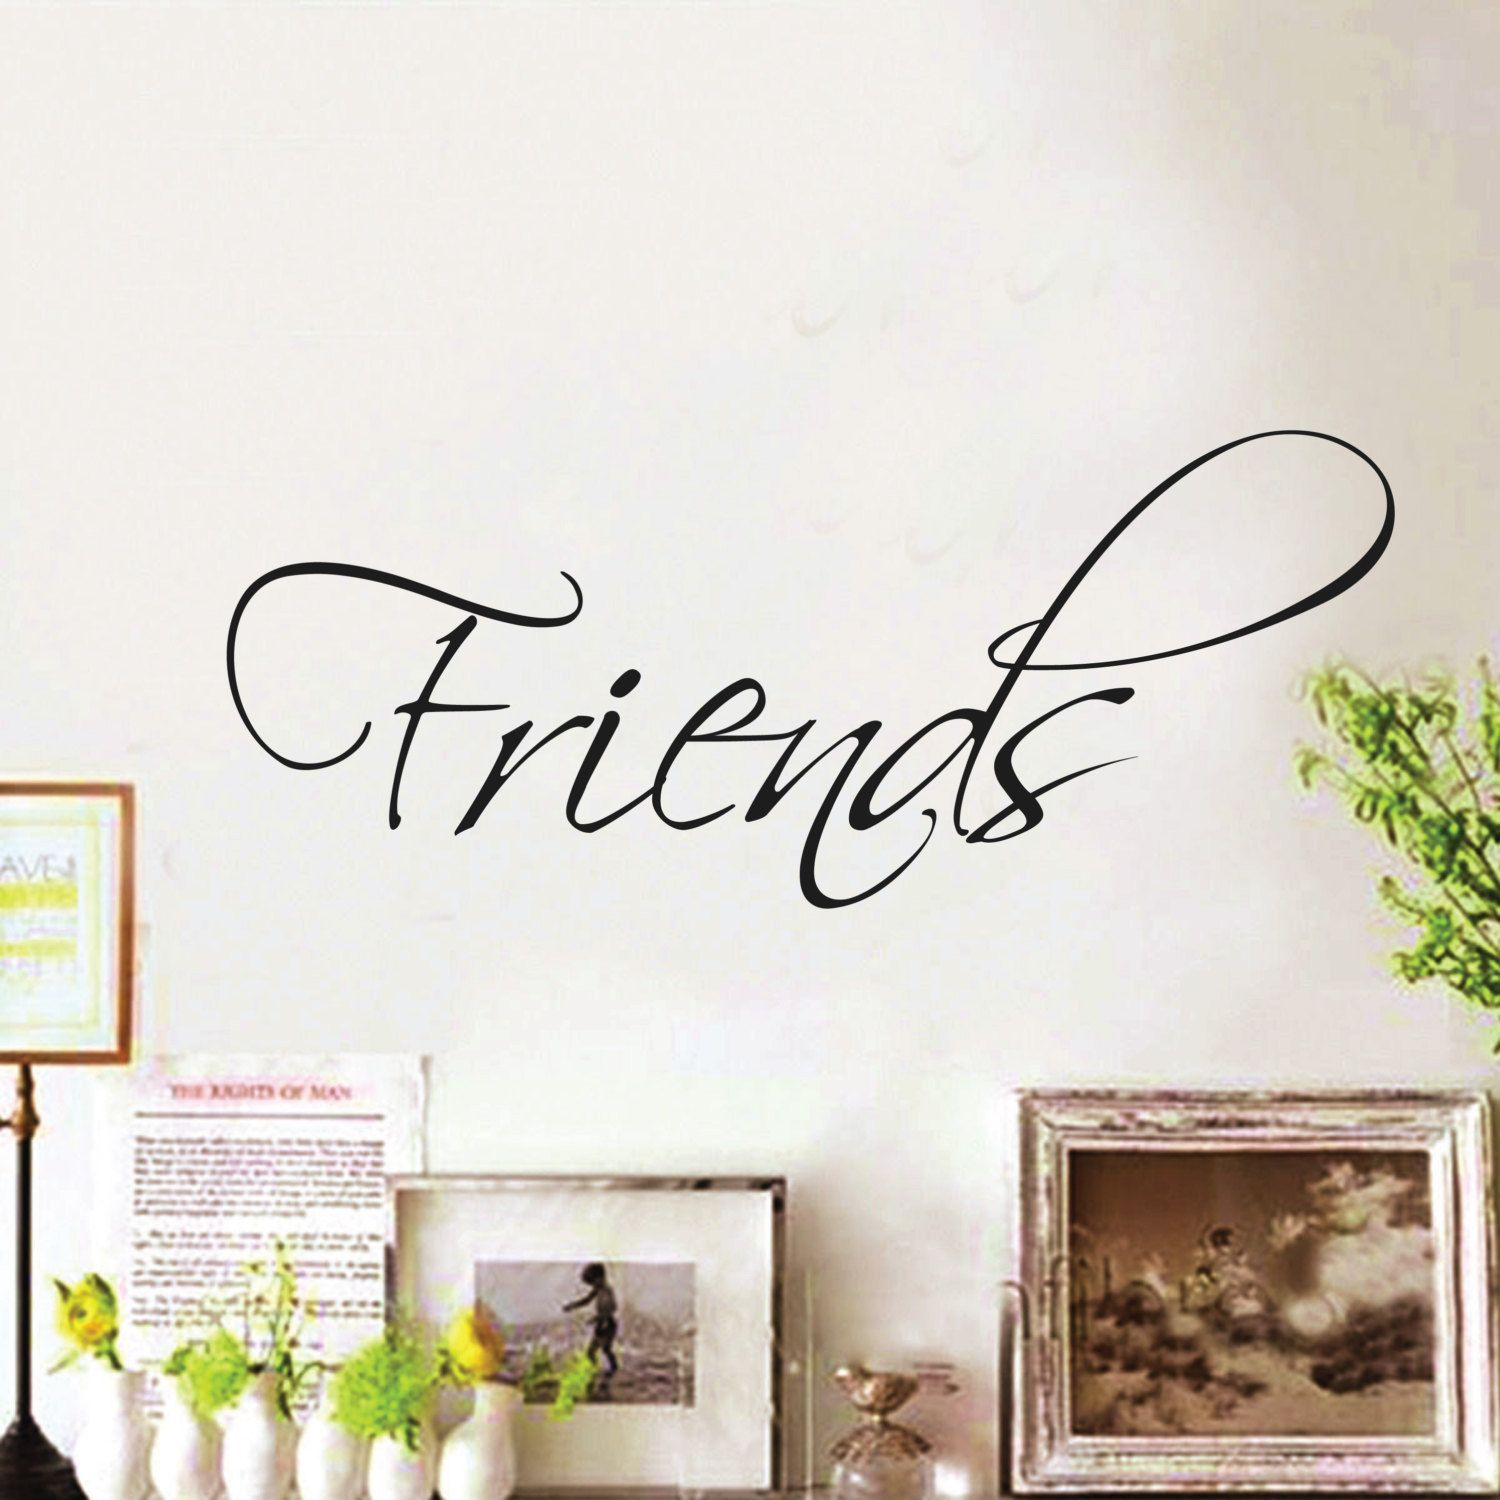 Wall Sticker Quote Quot Friends Quot Home Wall Decal Decor Swirly Writing Word Saying Design Hom Wall Stickers Quotes Living Wall Art Home Design Diy